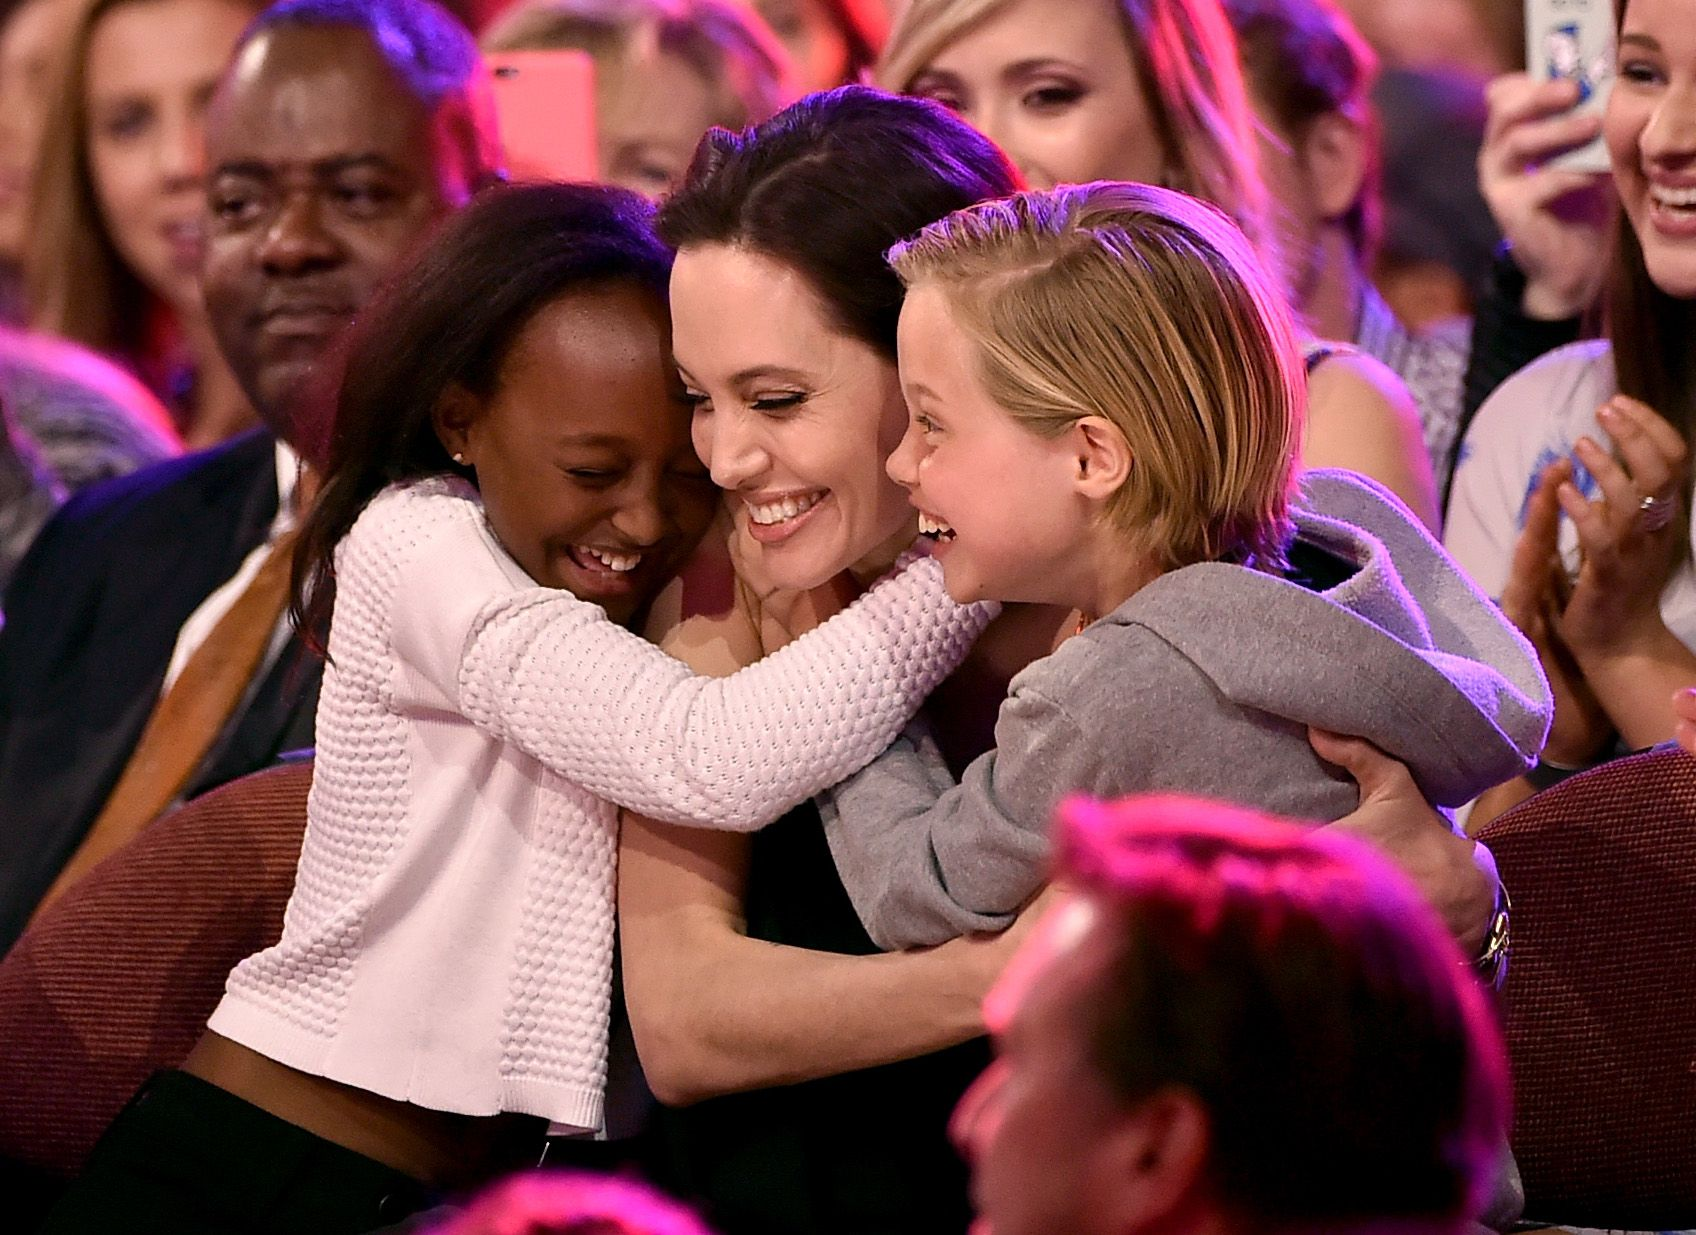 Angelina Jolie hugs Zahara Marley Jolie-Pitt and Shiloh Nouvel Jolie-Pitt after winning award for Favorite Villain in 'Maleficent' during Nickelodeon's 28th Annual Kids' Choice Awards on March 28, 2015 | Photo: Getty Images